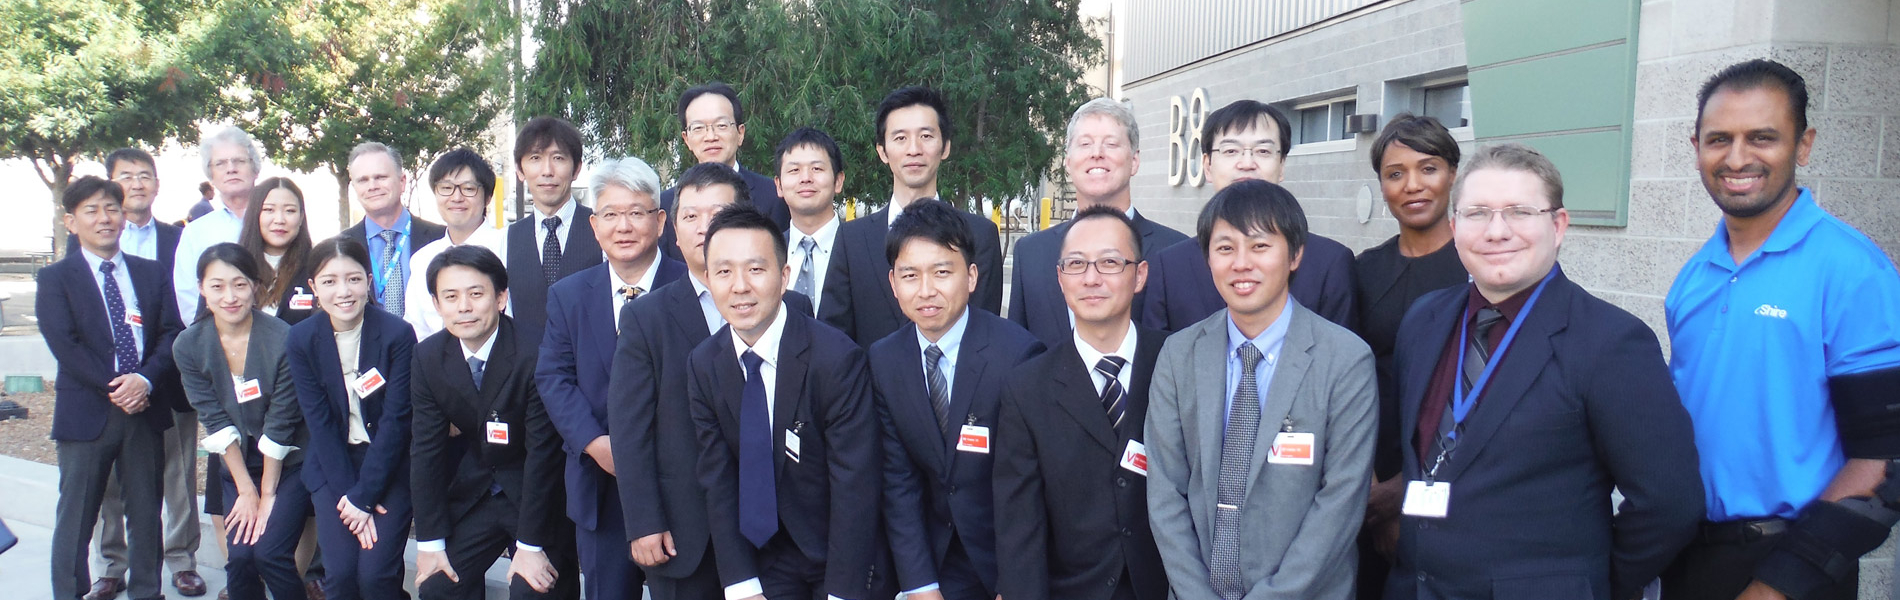 Japan Affiliate's US Plant Tour - ISPE Pharmaceutical Engineering